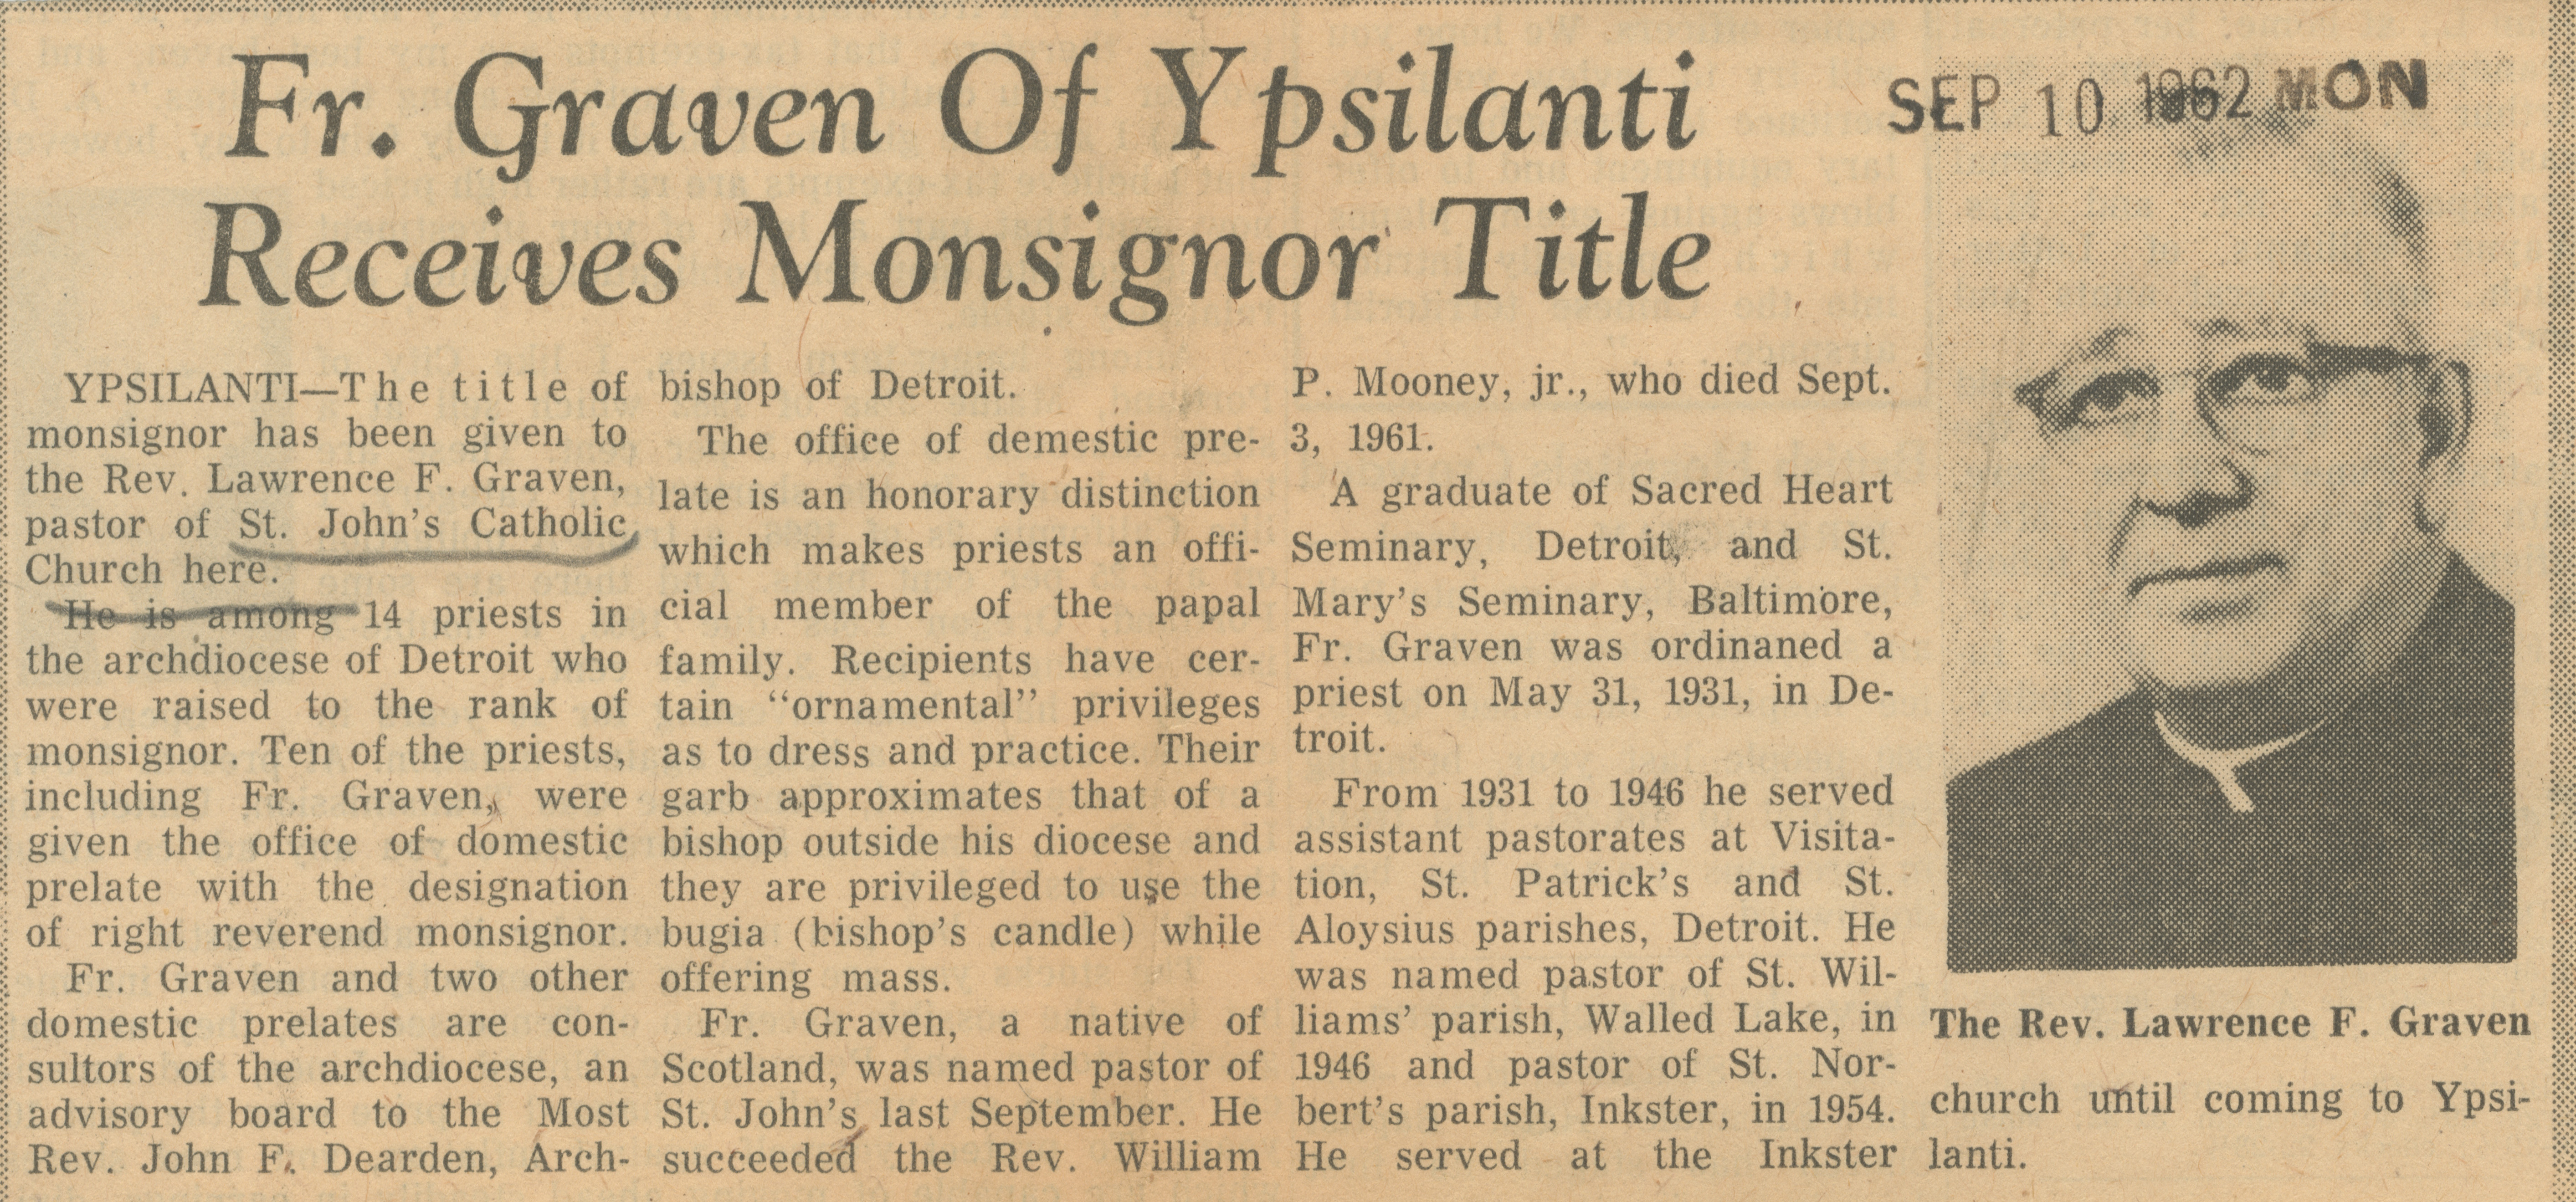 Fr. Graven of Ypsilanti Receives Monsignor Title  image